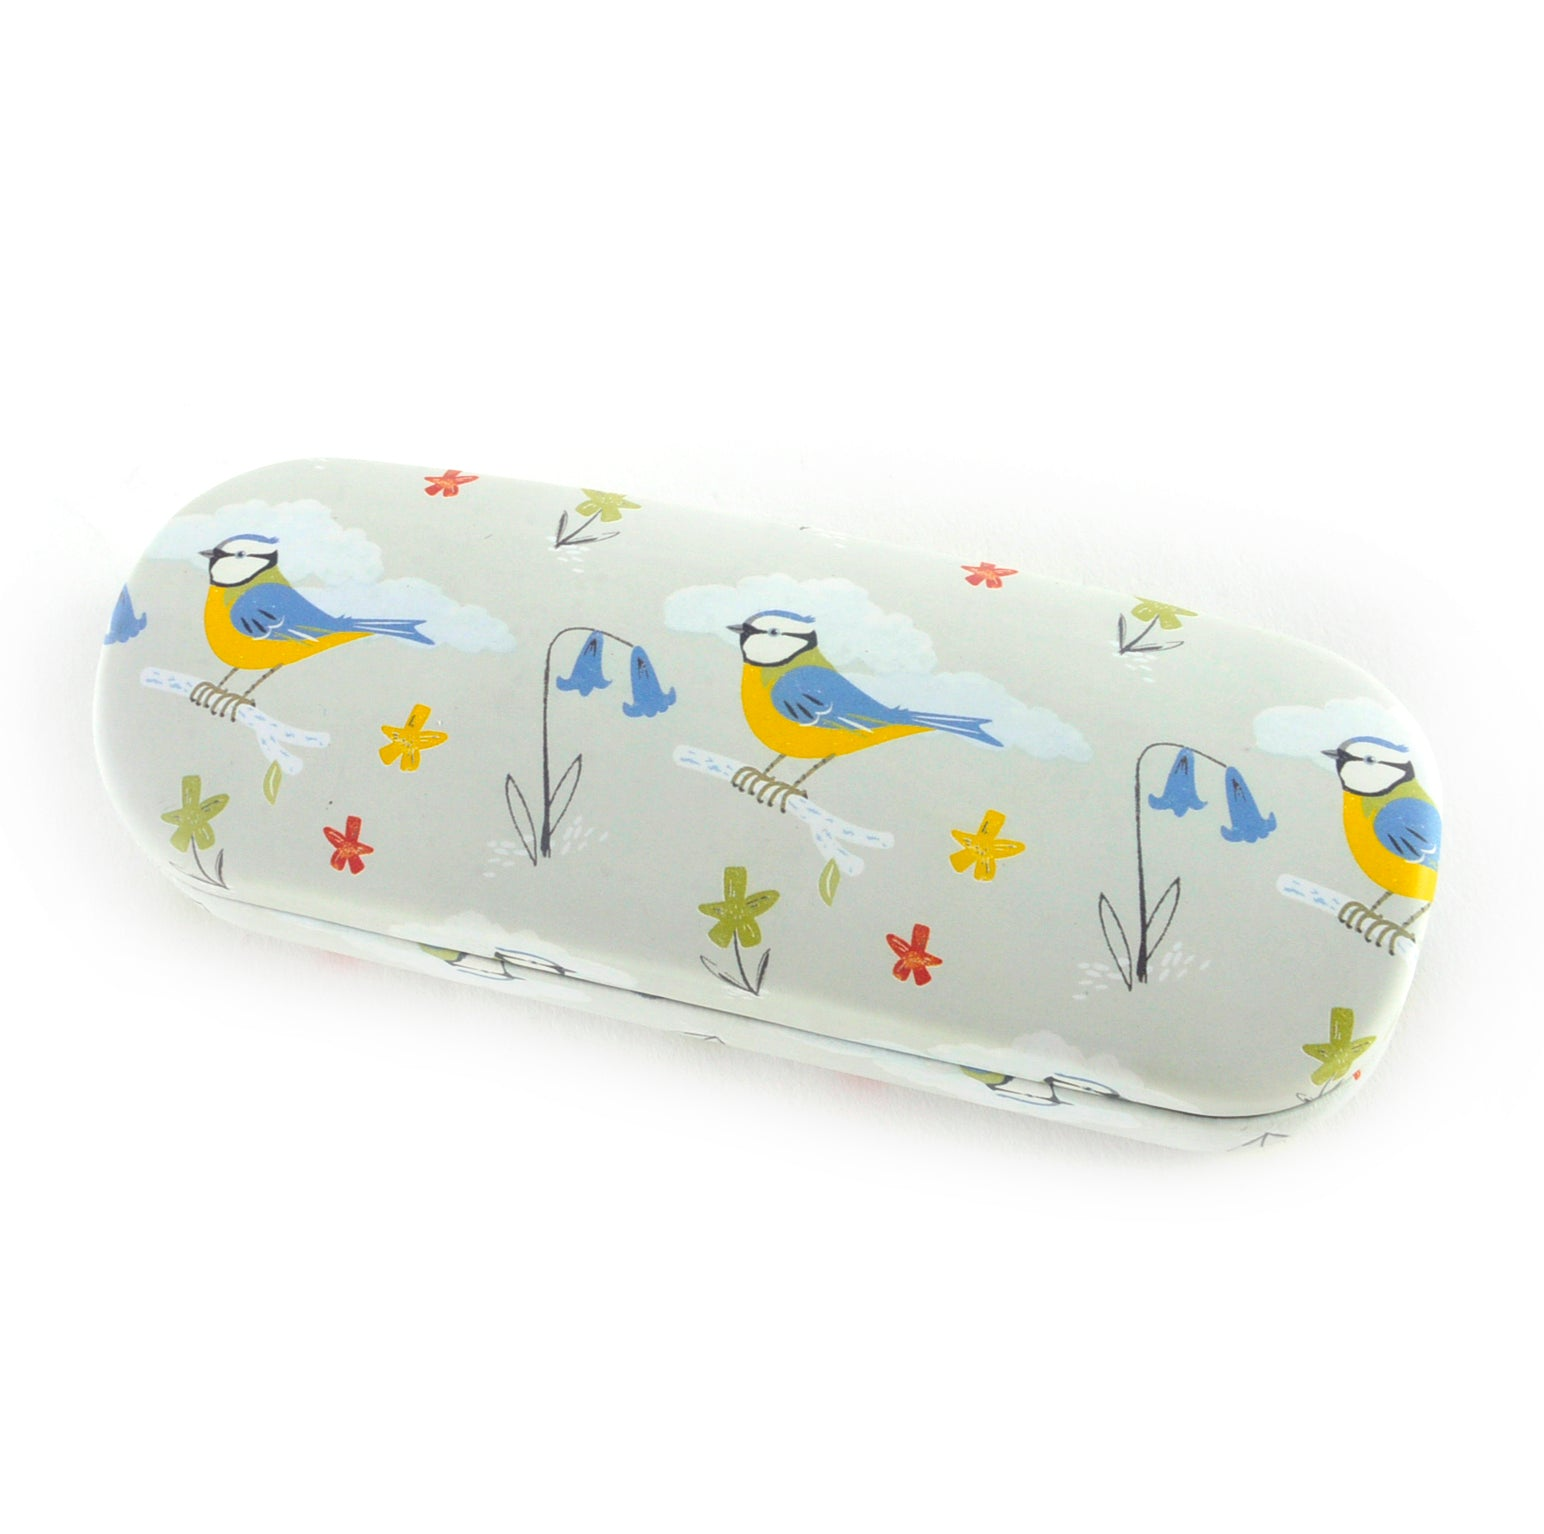 Blue Tit Glasses Case by Sass and Belle - A Fly Went By